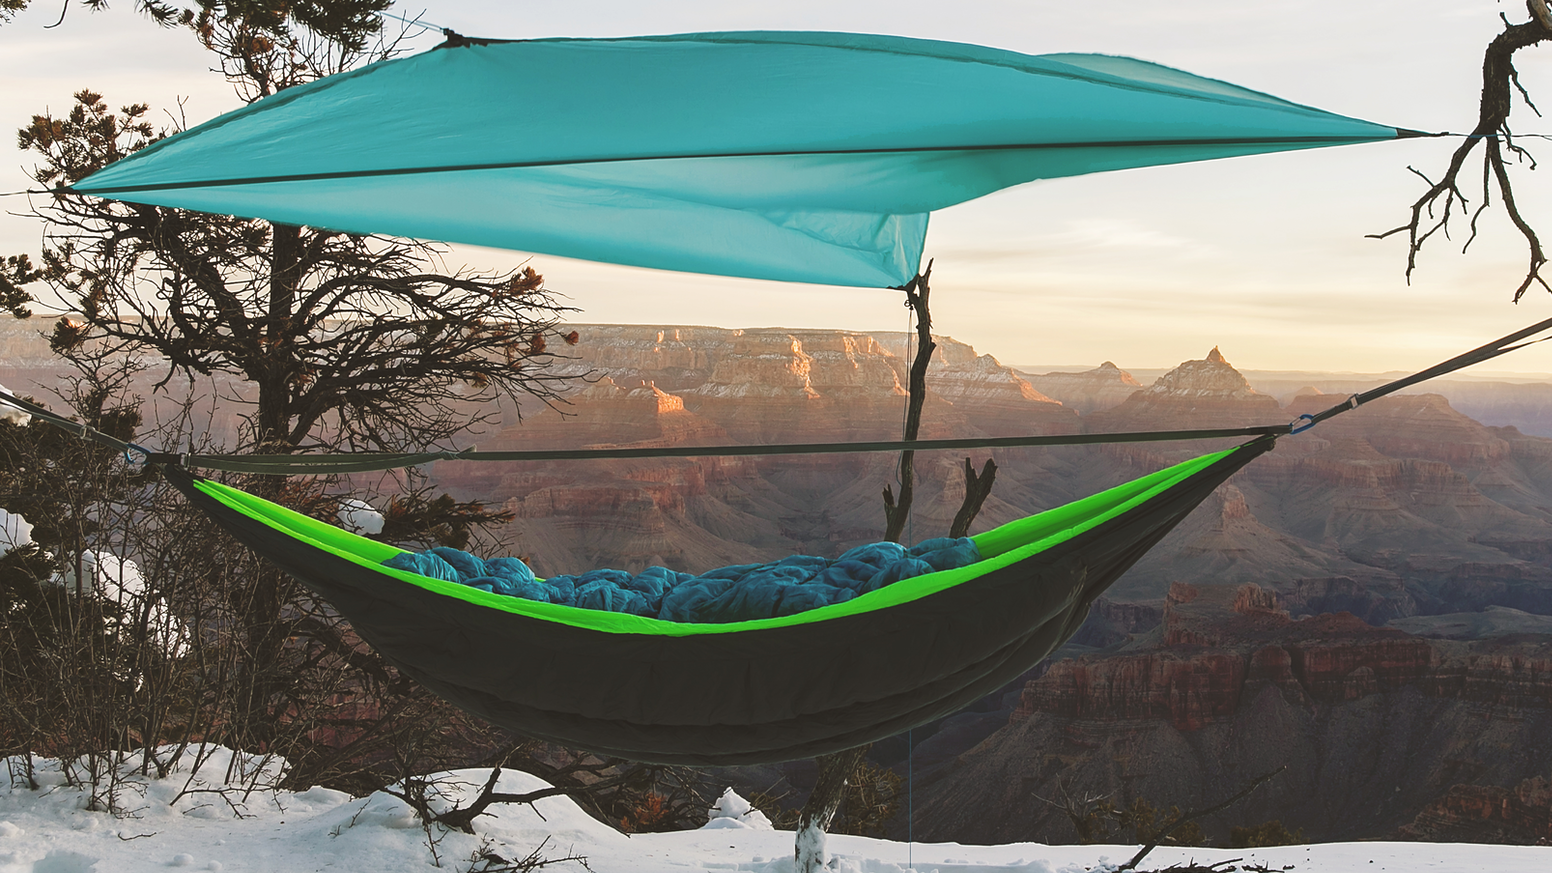 Performance Down-filled Hammock System | World's Lightest Hammock. 100% Made in USA. Designed Ultra-Light for you to explore everywhere